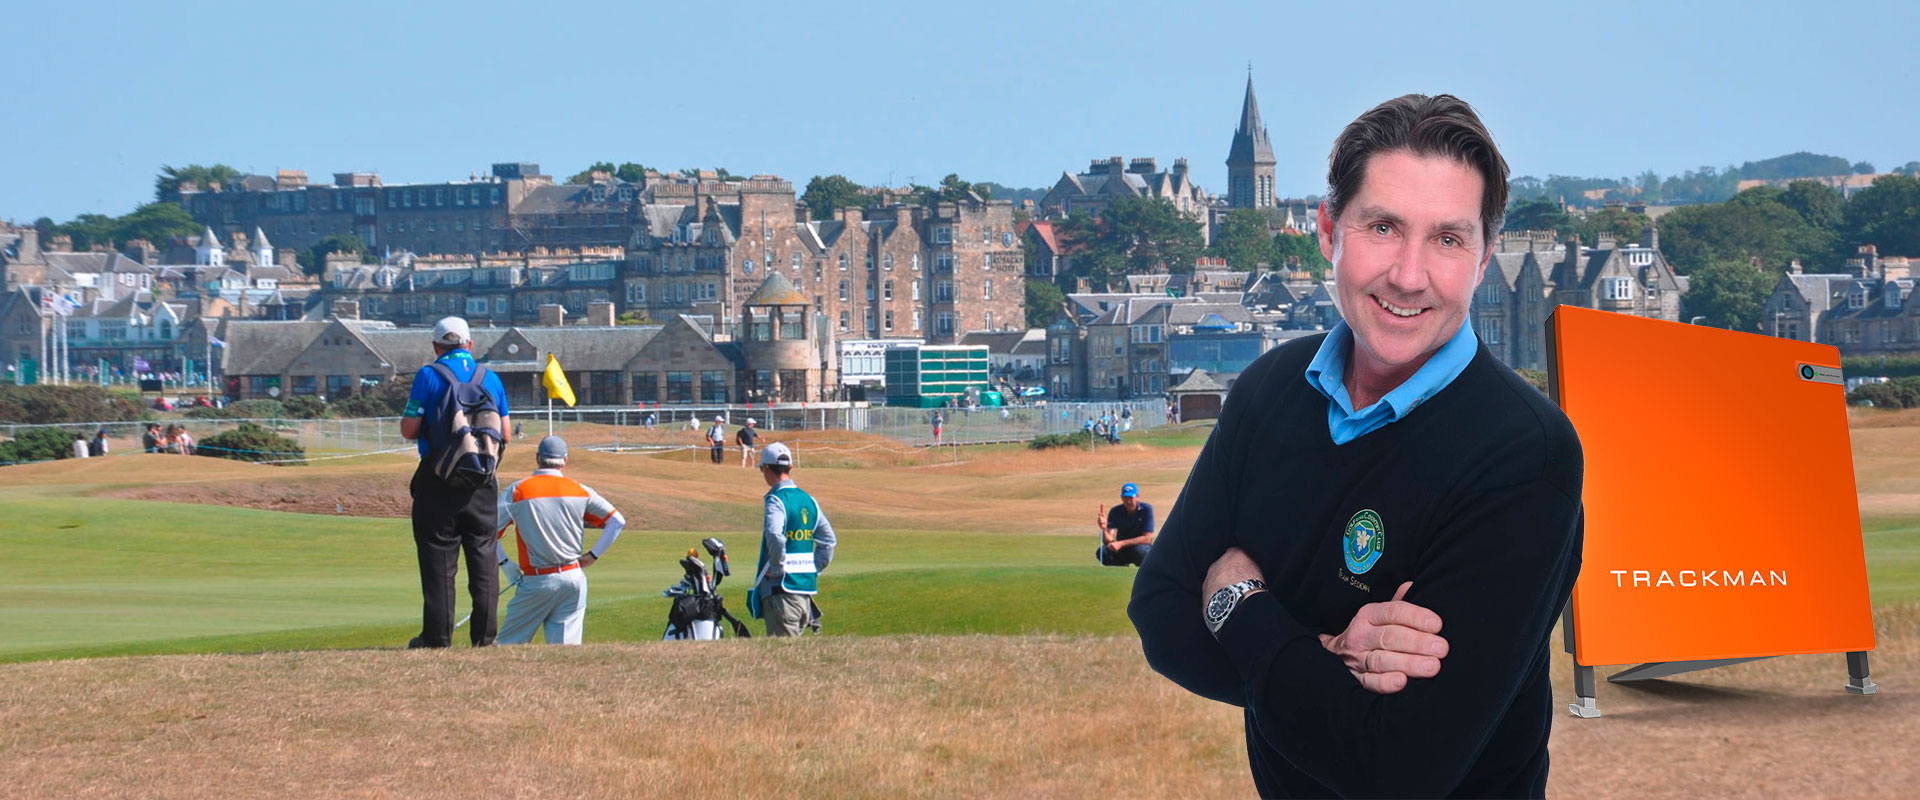 Training in St. Andrews